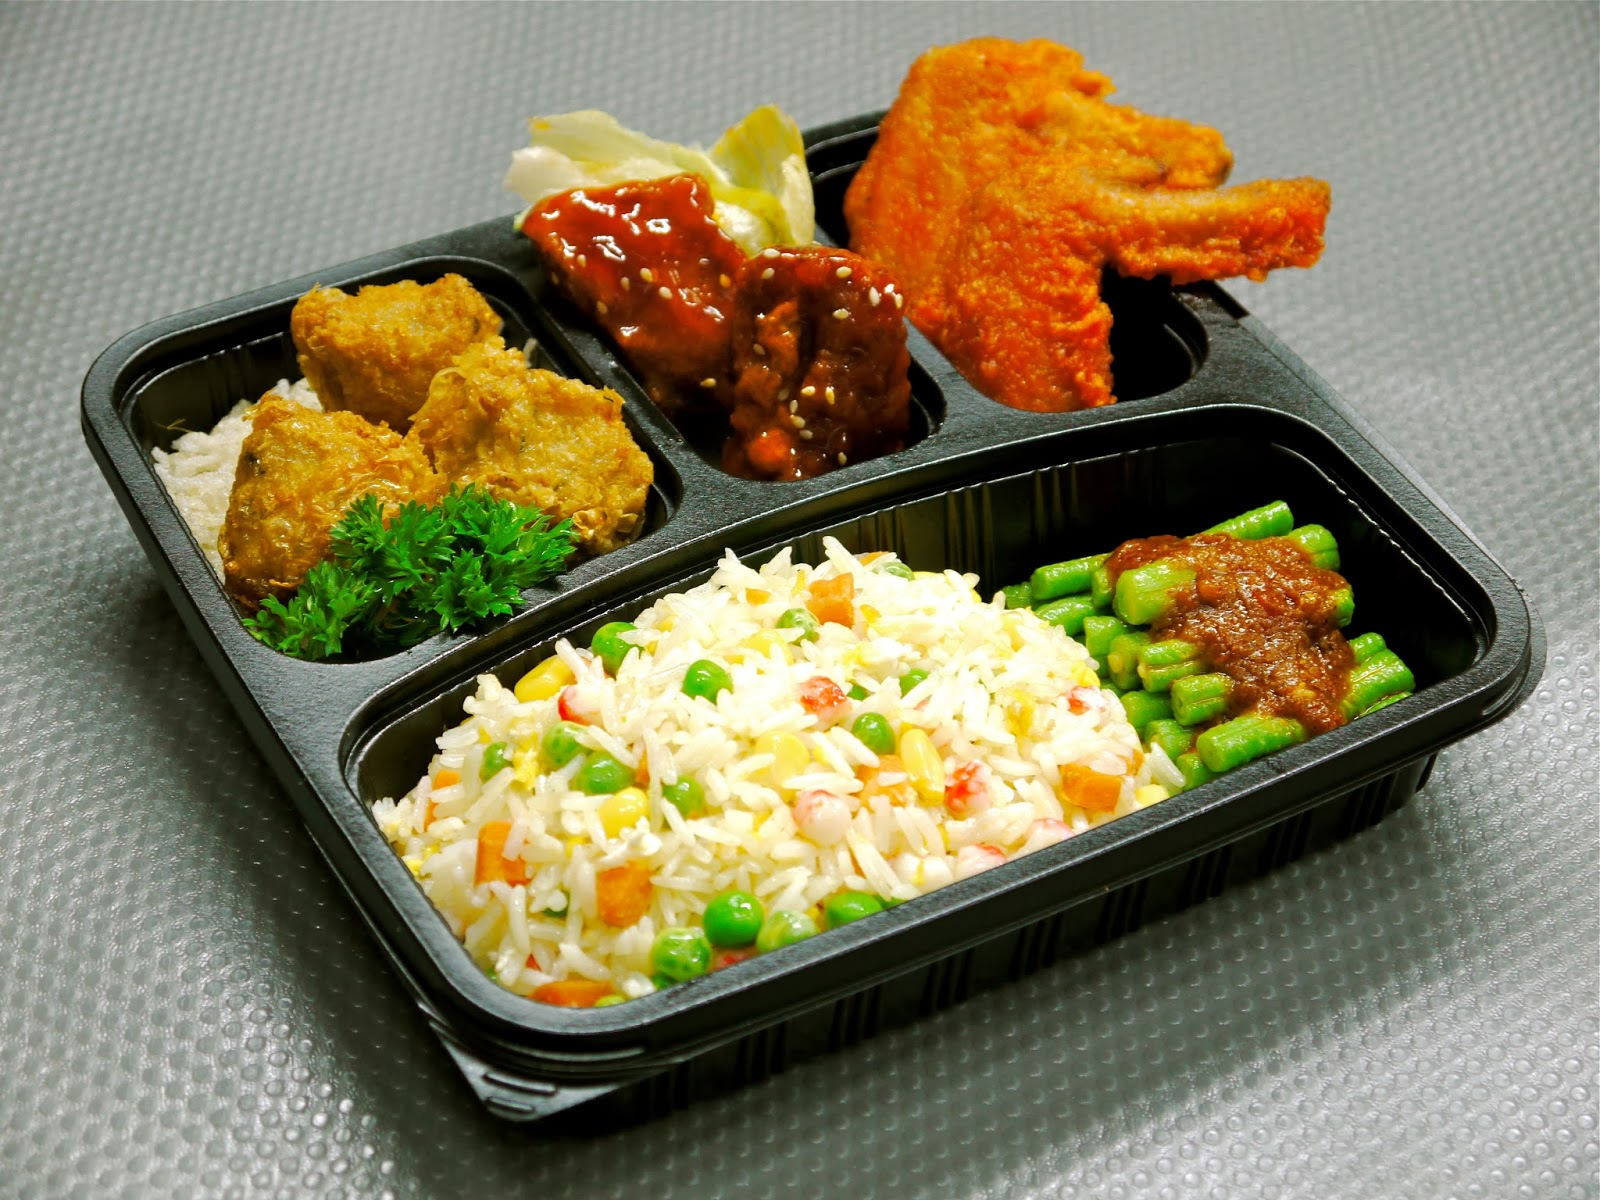 Mei Hao Catering - Chinese bento delivery, corporate catering, singapore catering, buffet catering singapore